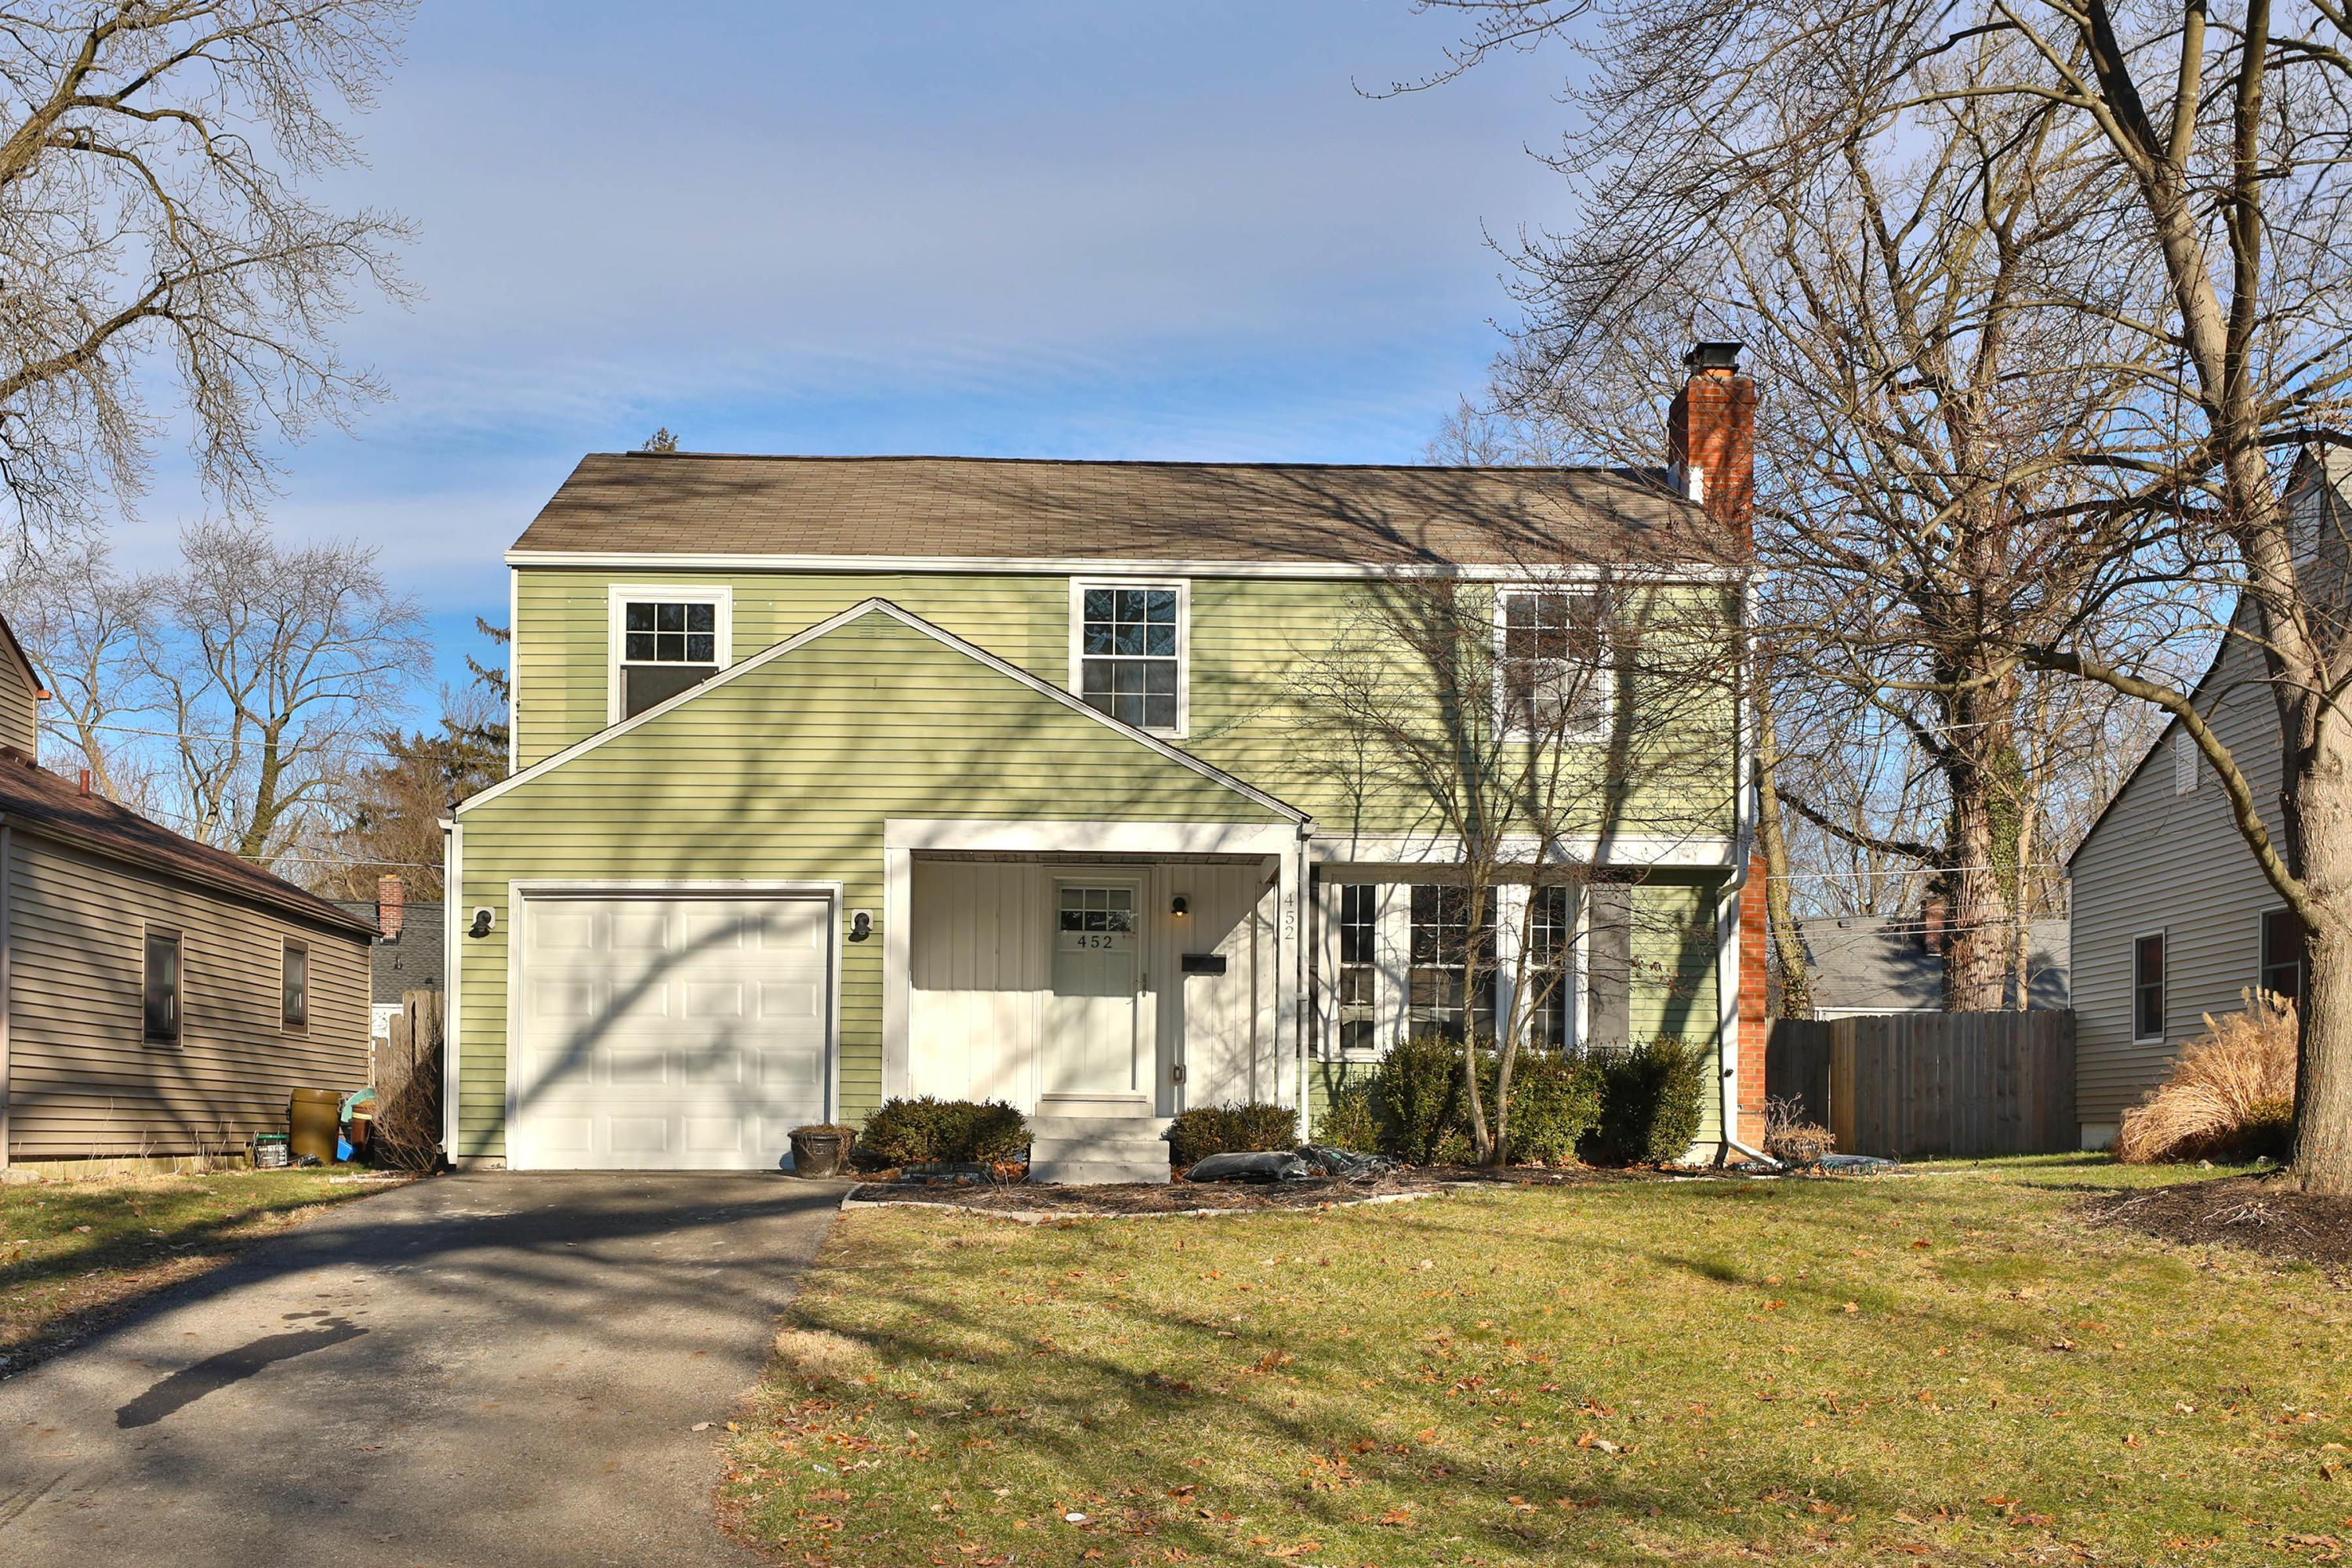 Photo of 452 Colonial Avenue, Worthington, OH 43085